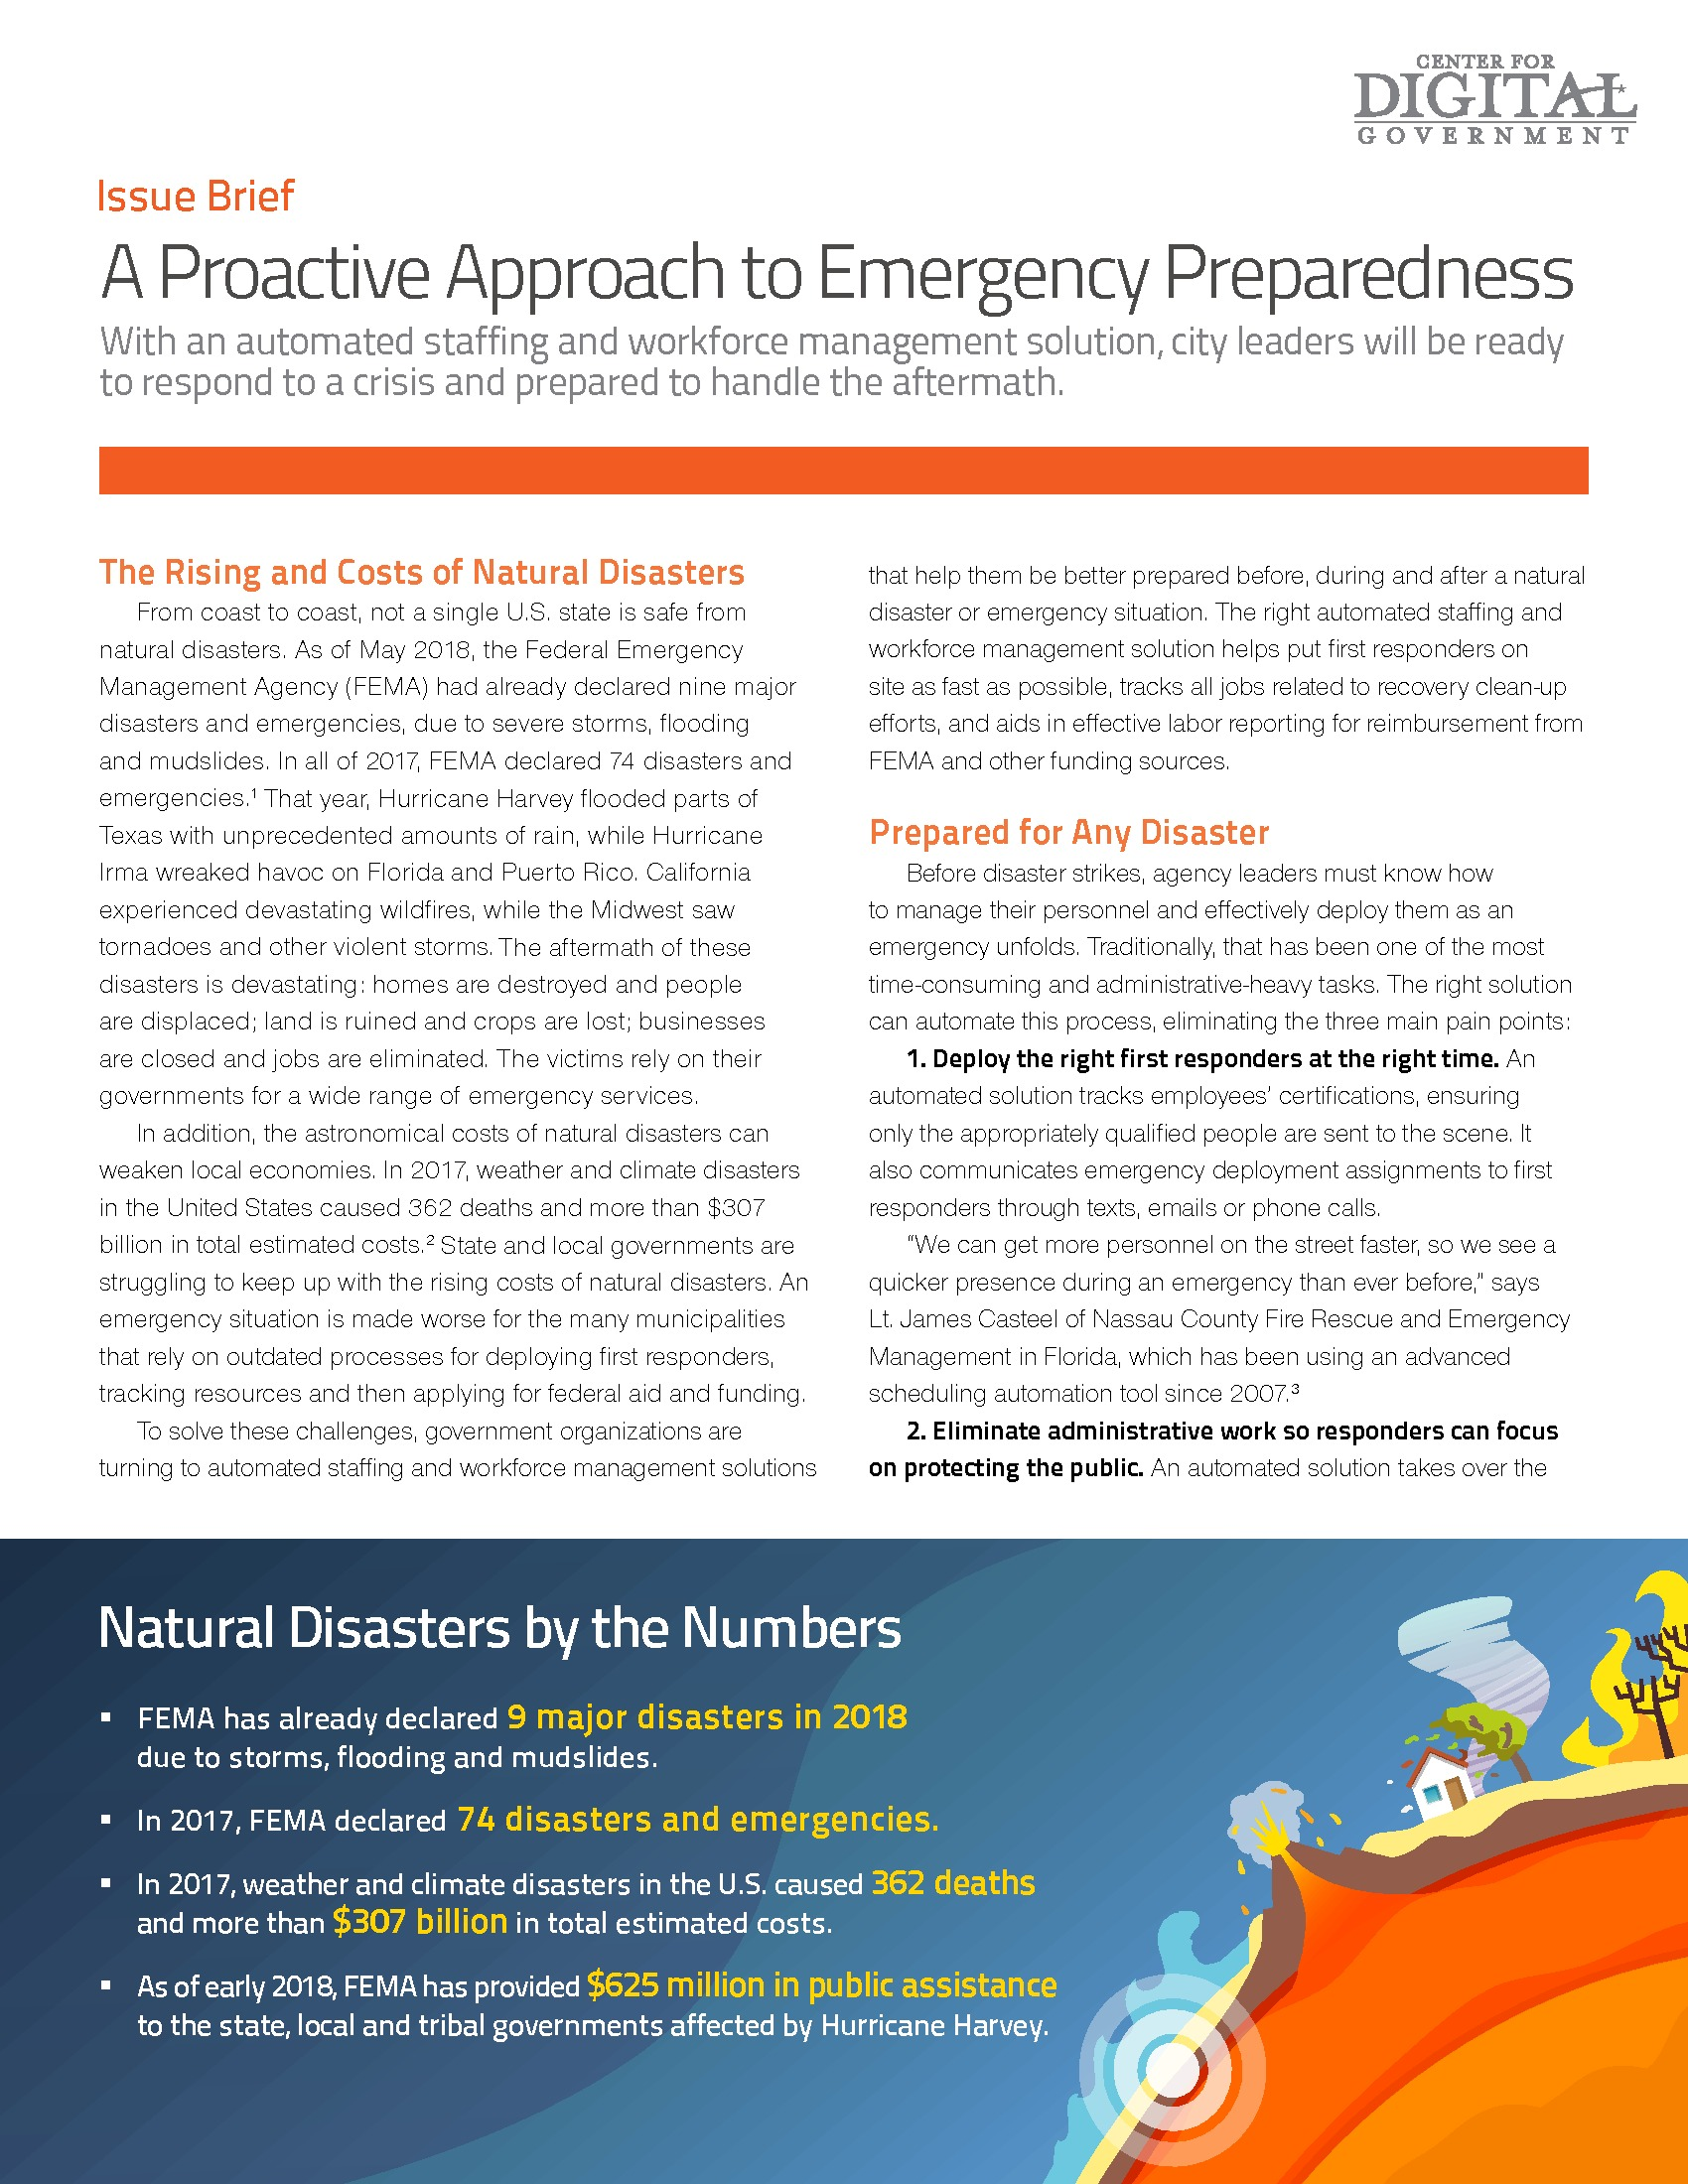 GOV - Kronos - 2018 Workforce Channel - Proactive Emergency Preparedness